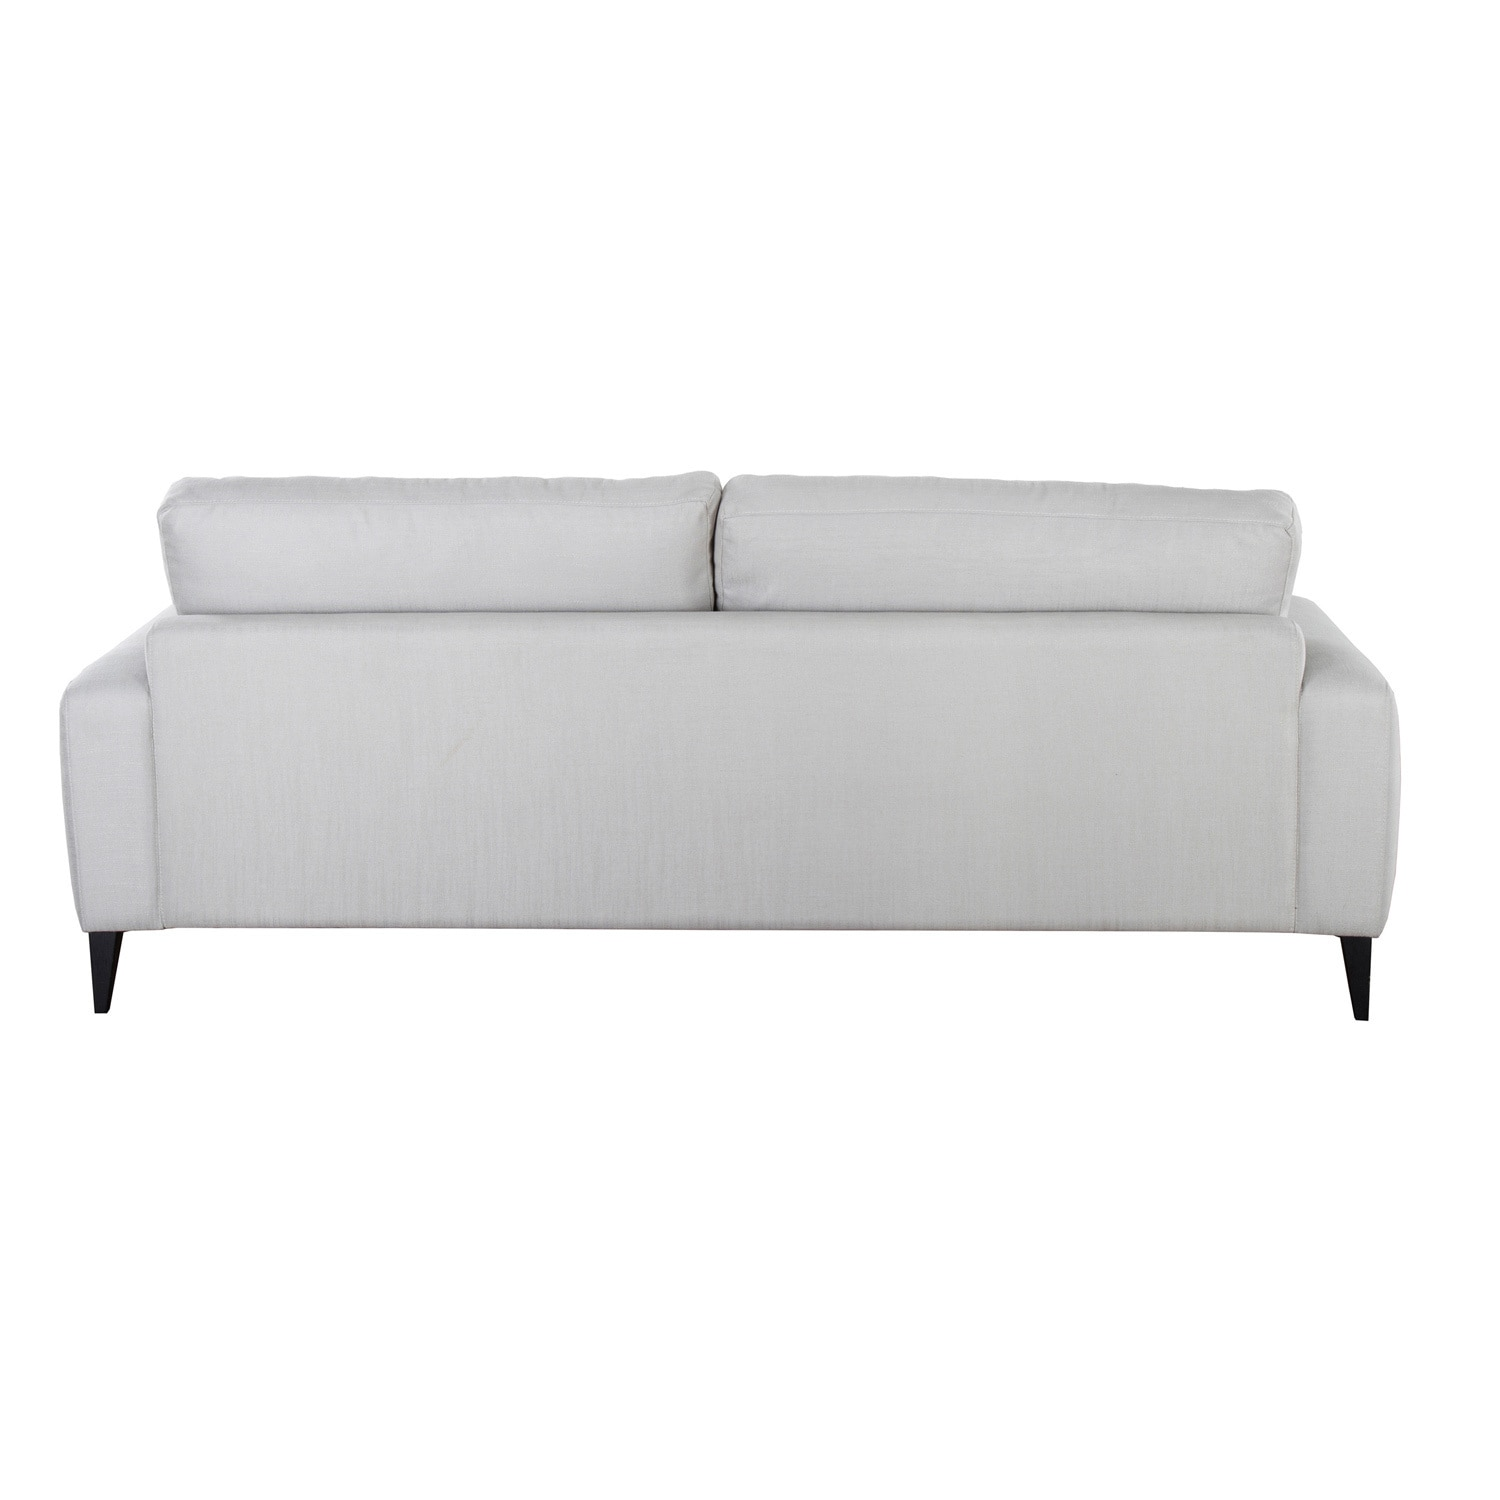 Great Brighton Grey Upholstered 90 Inch Sofa By Kosas Home   Free Shipping Today    Overstock   23715688